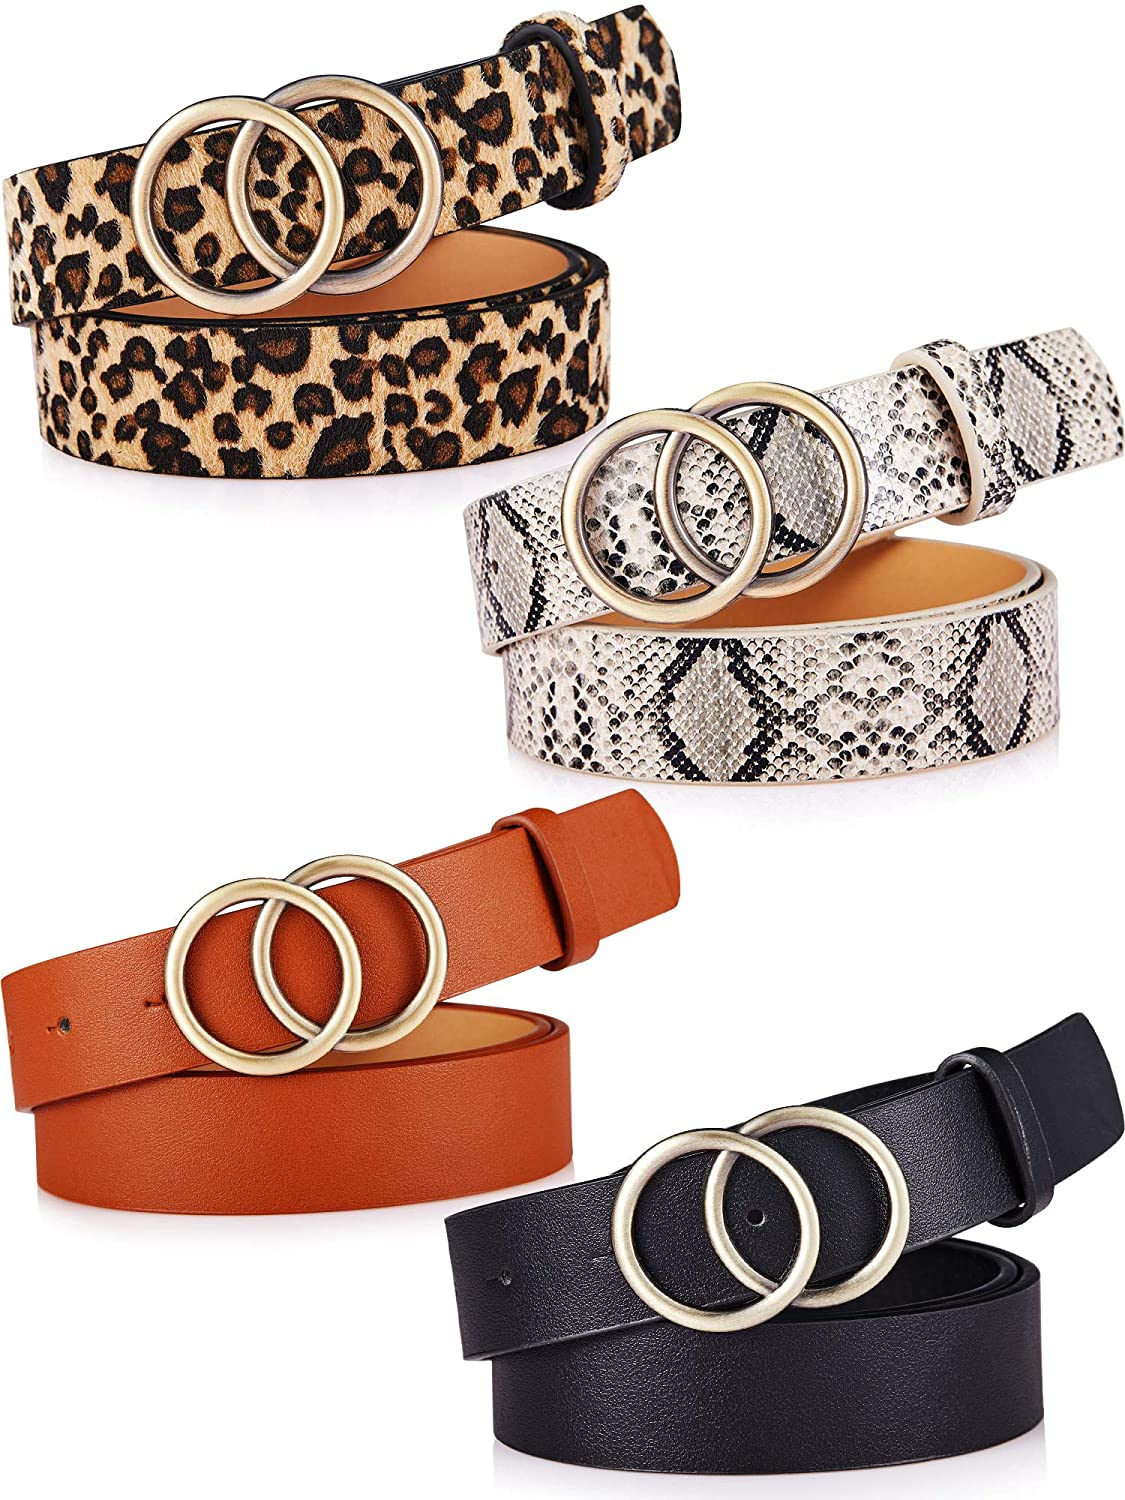 4 Pieces Women Faux Leather Waist Belt for Ladies Jeans Pants with Double O-Ring Buckle